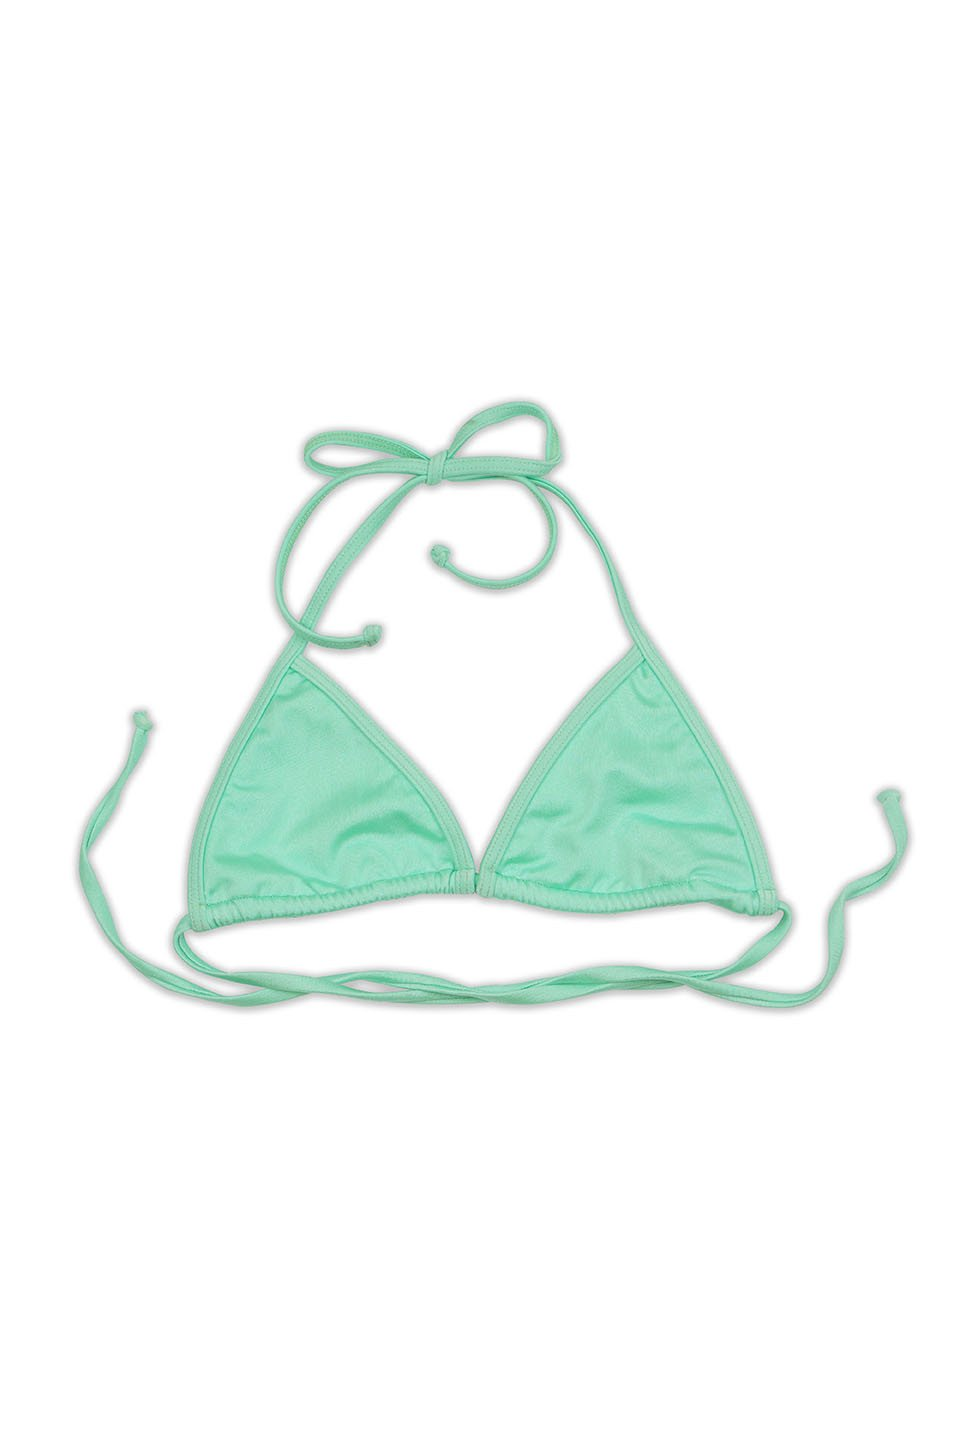 Risk Swim FLUX Bikini Top in Shimmer Menthol - Front - RIS-K